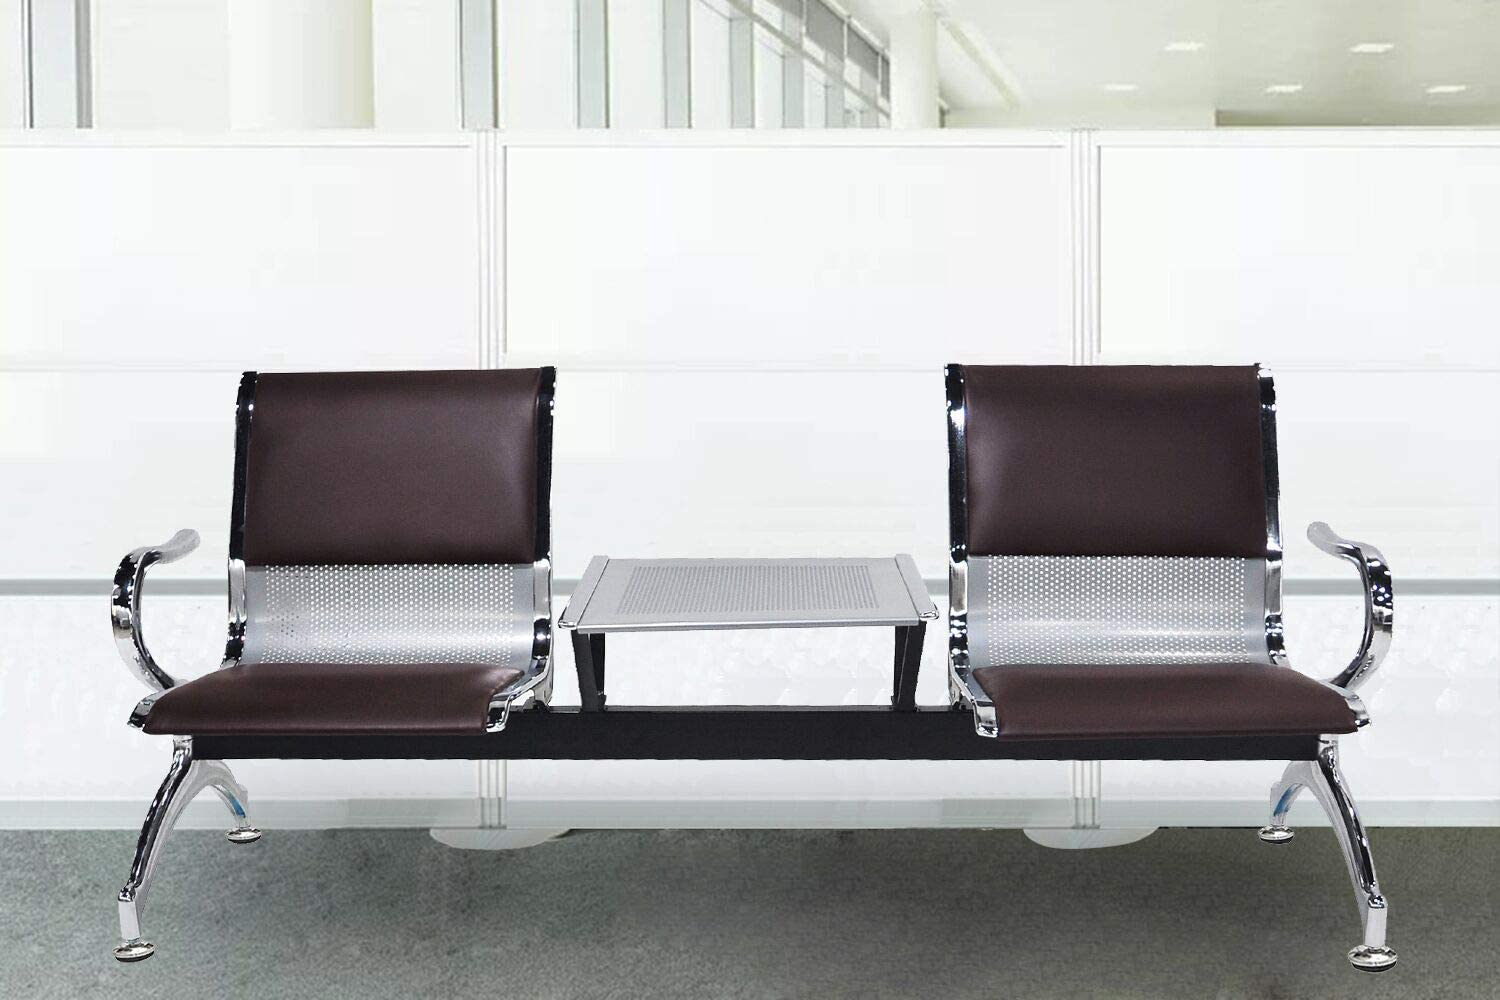 LIK.TOPPER New PU Leather Airport Reception Waiting Chair Office Hospital Bank Bench Furniture 2-Seat W/Table, Brown